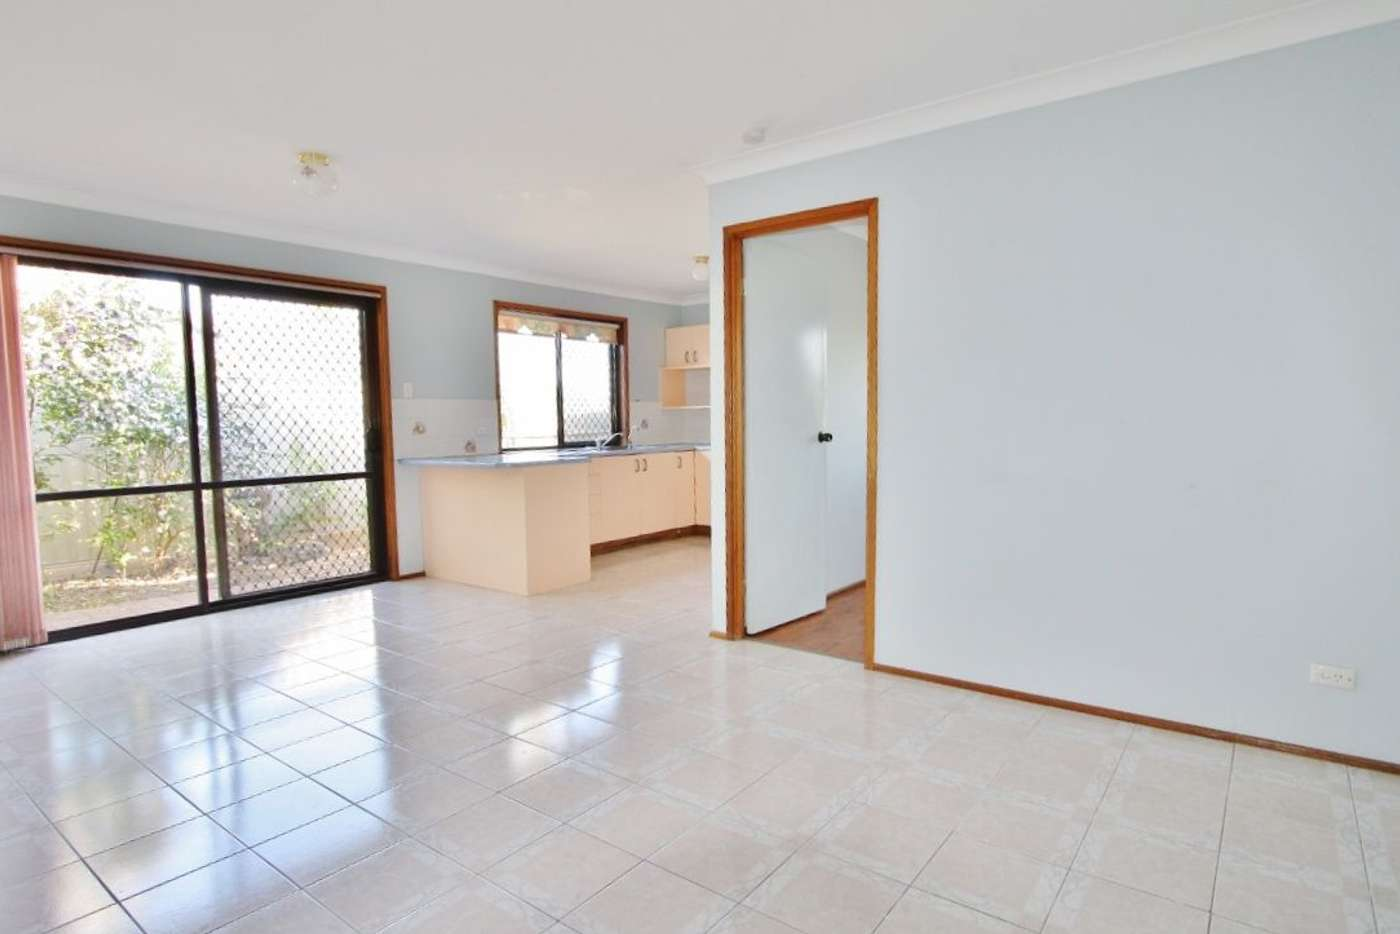 Sixth view of Homely house listing, 1 Narmar Court, Eight Mile Plains QLD 4113